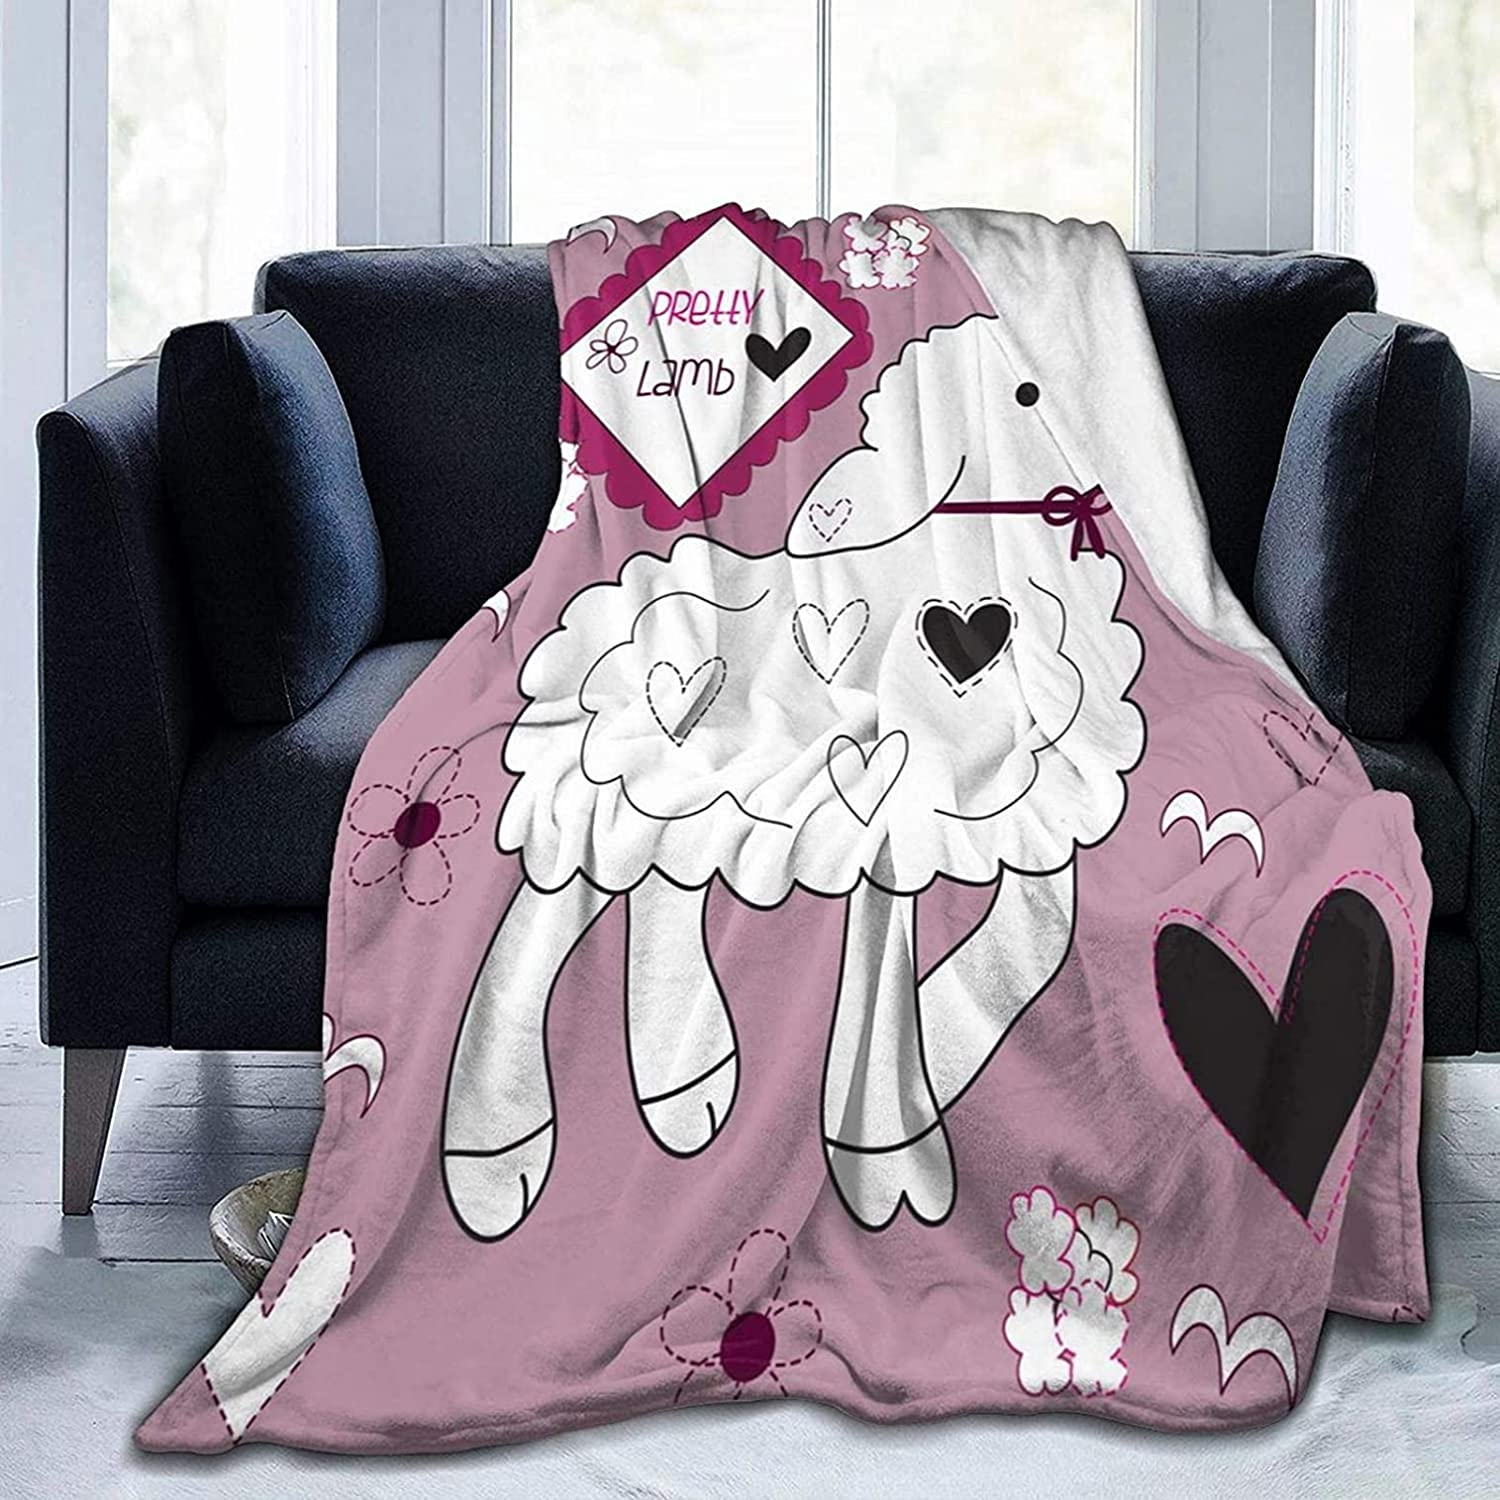 Fleece Blanket Throw Houston Mall and Max 84% OFF Throws So Lightweight Lamb Cute Super